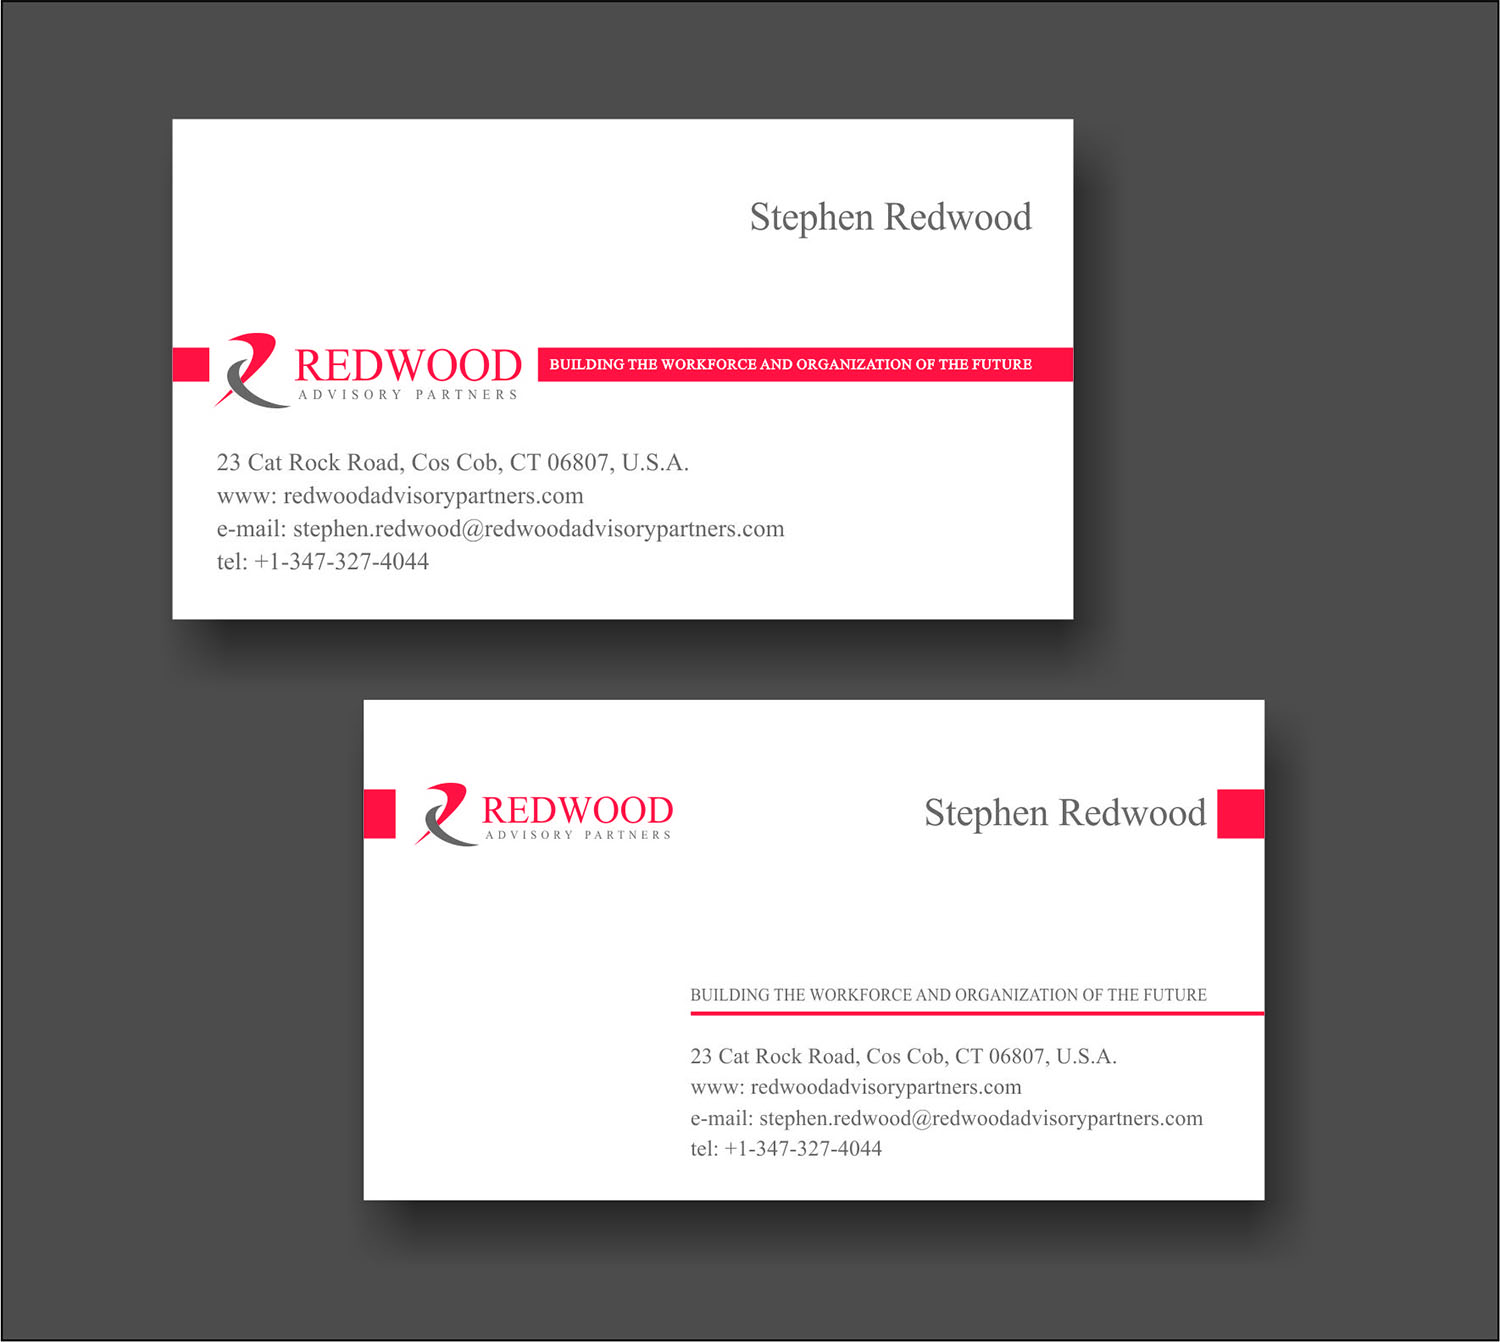 Upmarket serious business business card design for a company by tt business card design by tt 67 for this project design 18214940 colourmoves